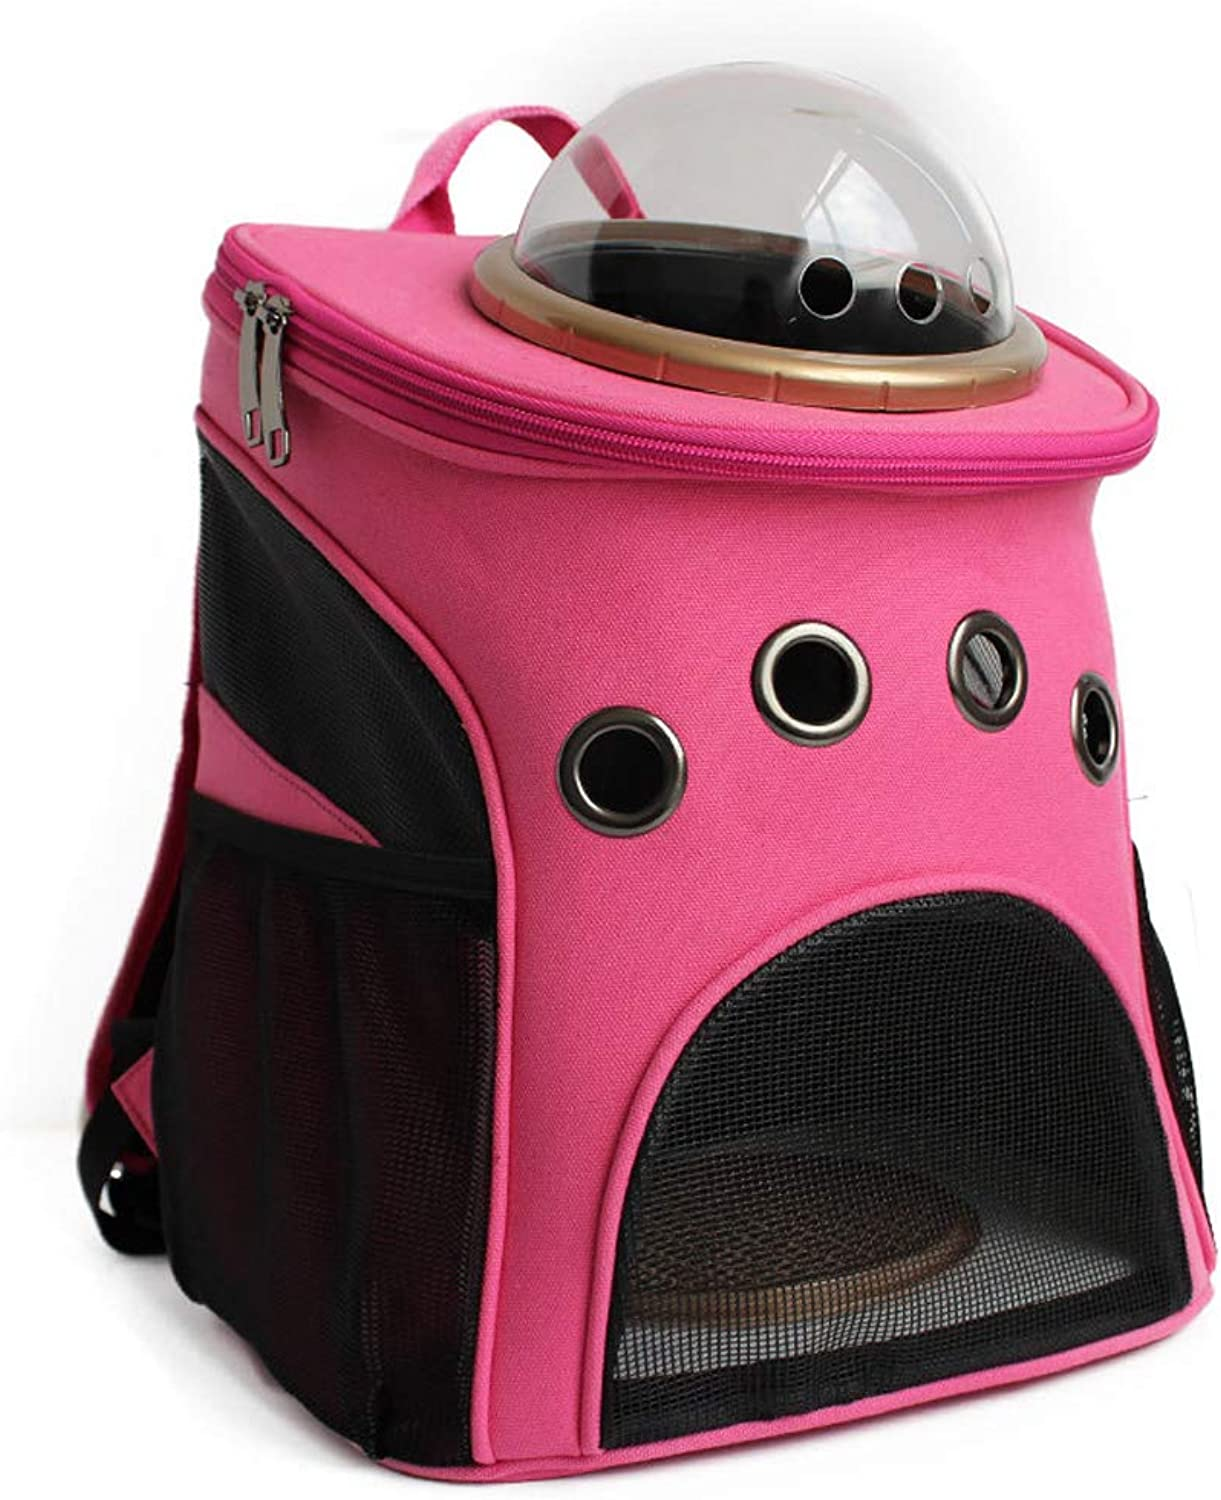 Pet Carrier Soft Animal Carriers  Portable SoftSided Travel Bag  Best For Small Or Medium Dog And Cat